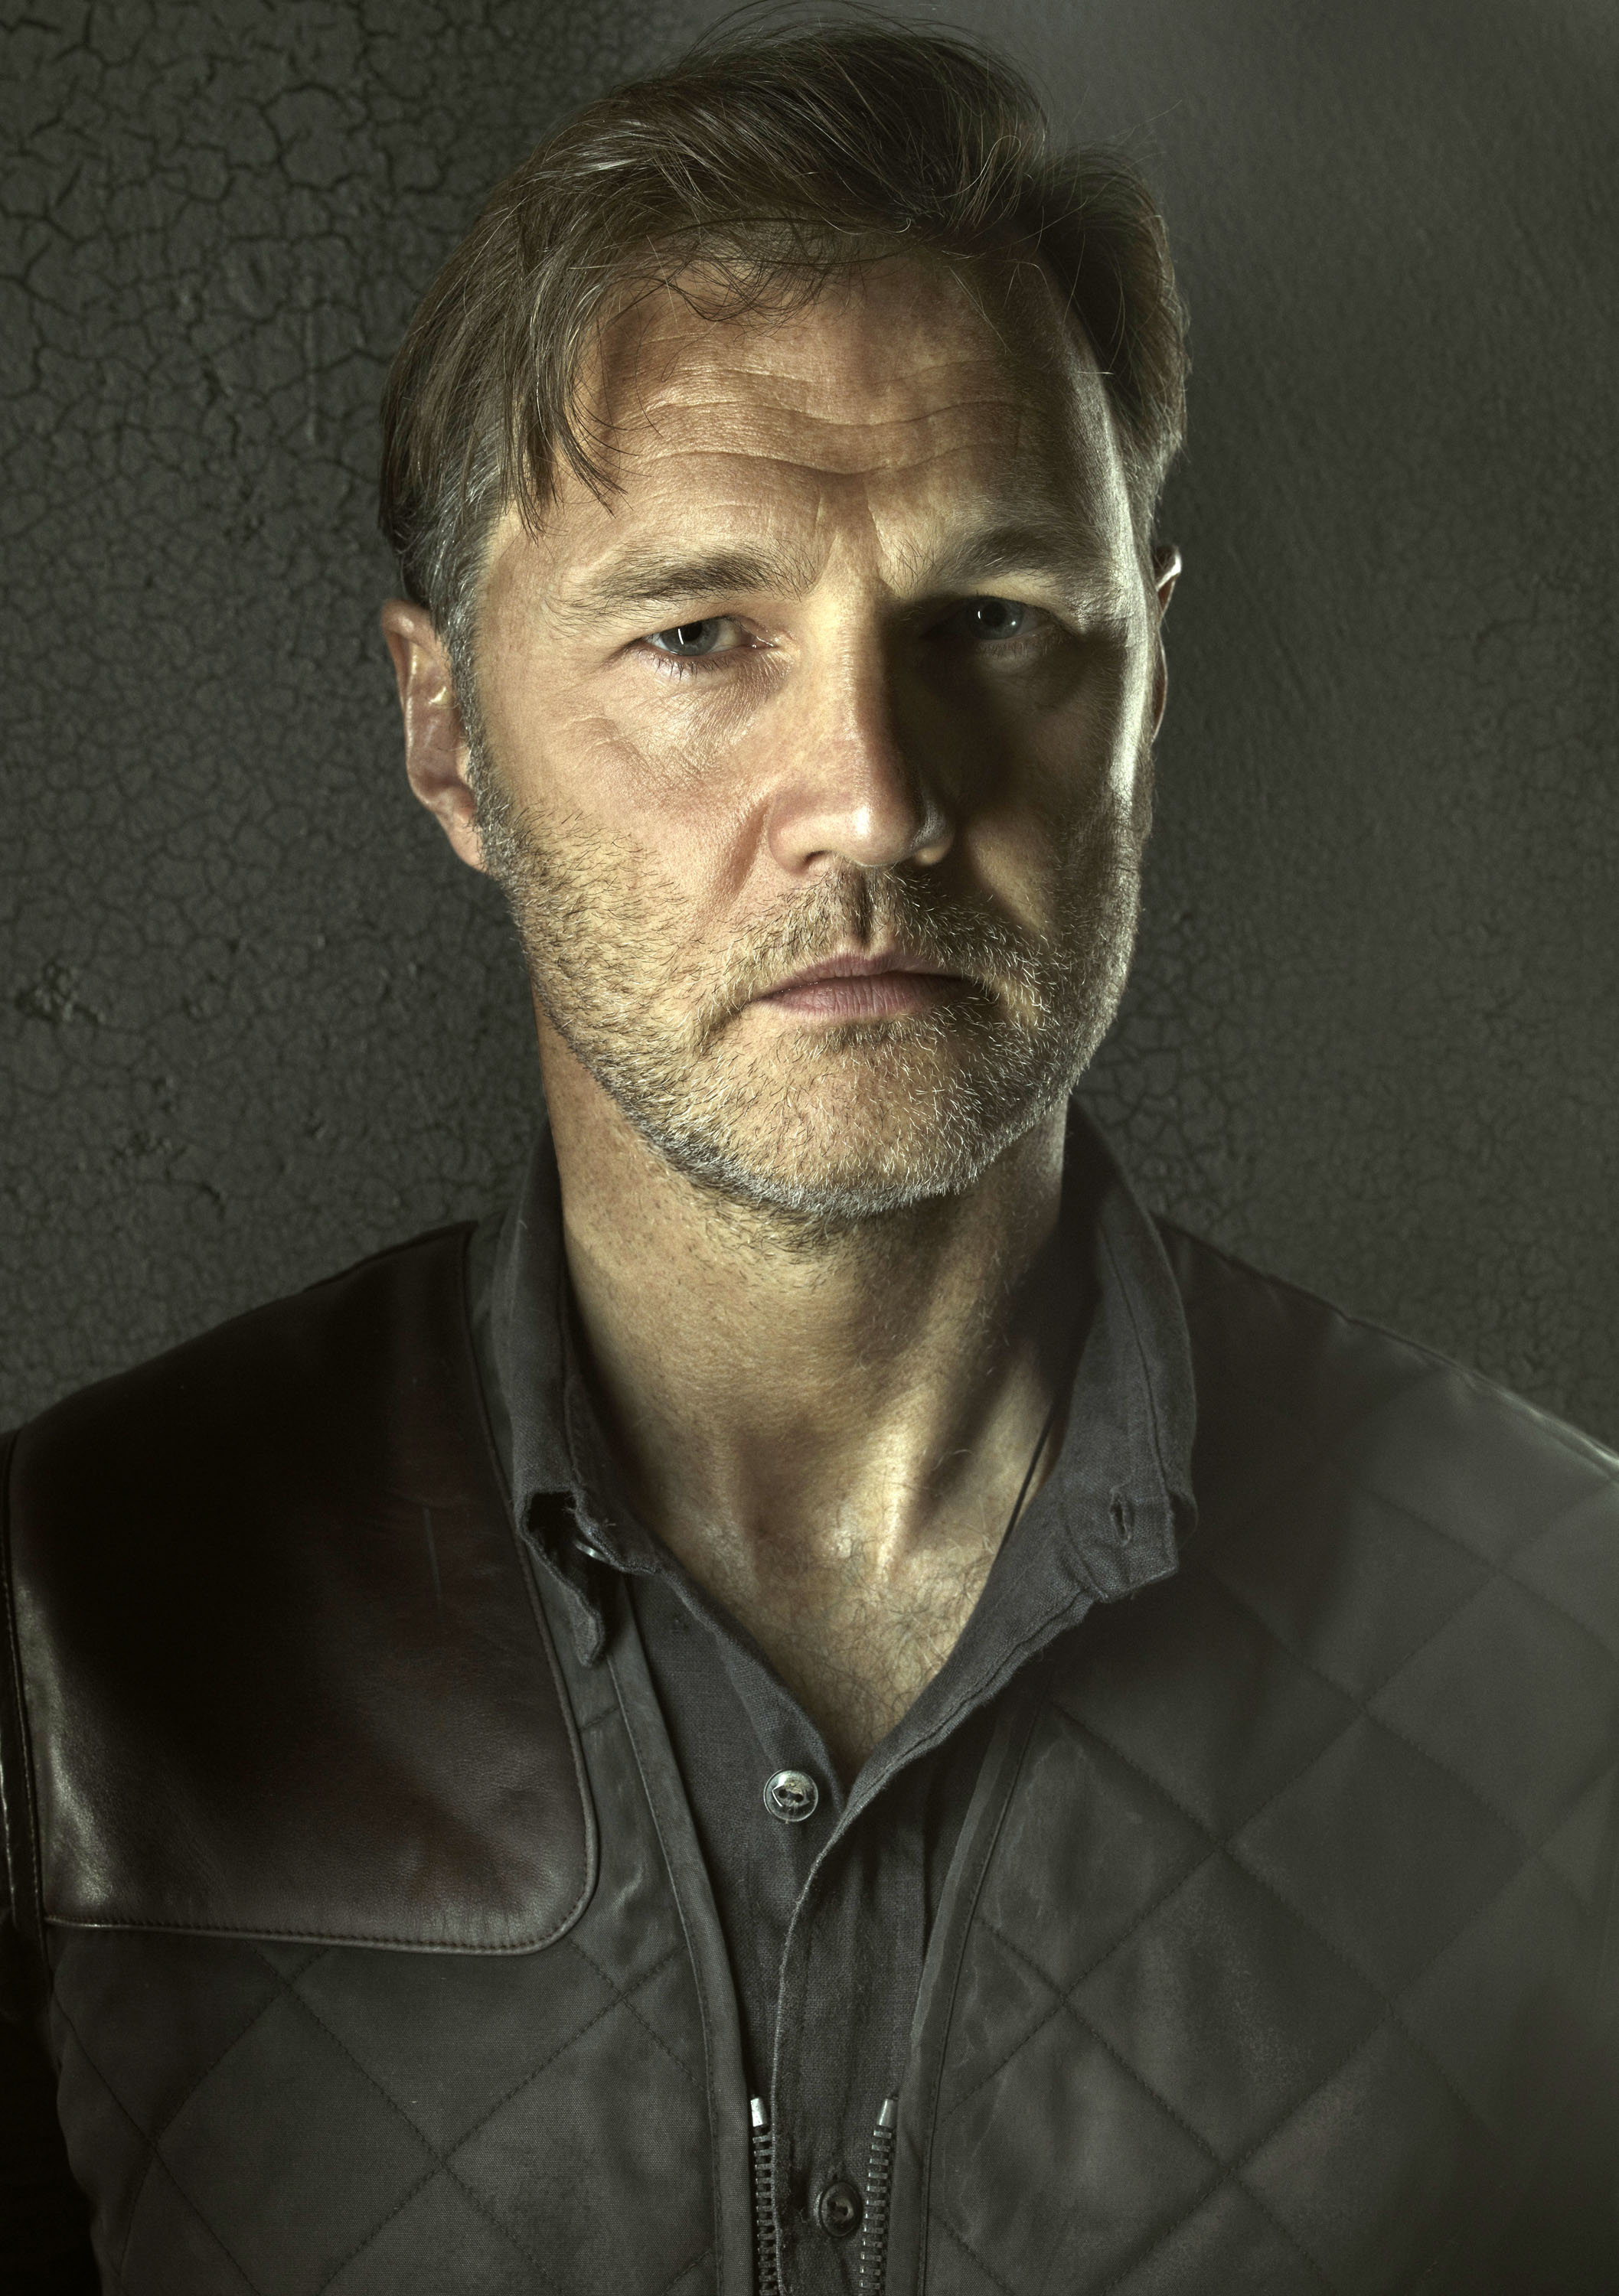 david morrissey instagram